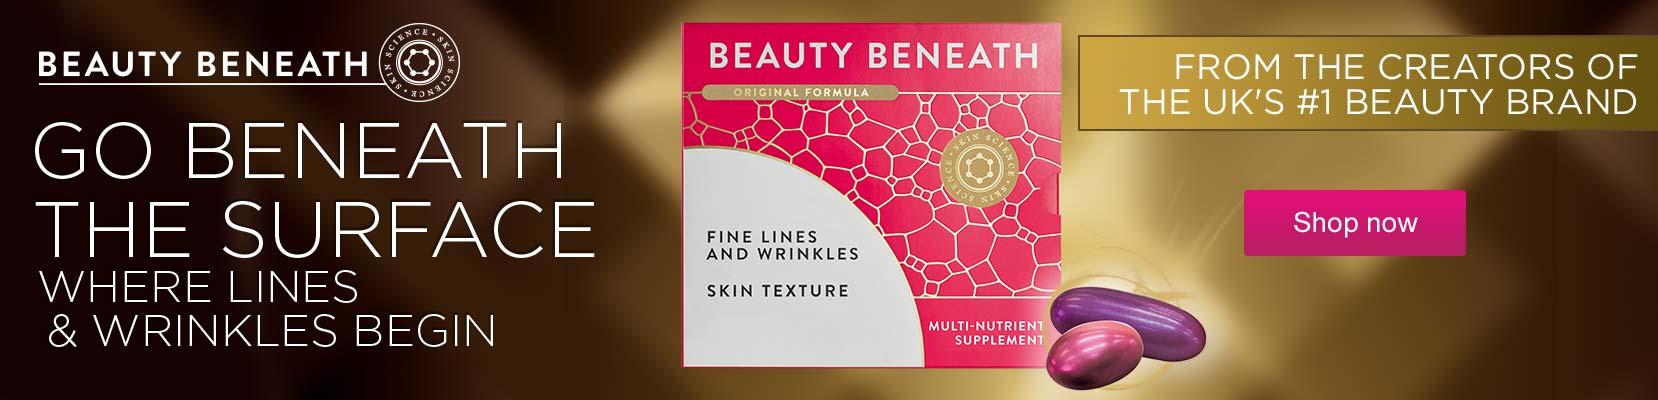 Beauty Beneath. Go beneath the surface where lines & wrinkles begin. From the creators of the UK's #1 beauty brand. Shop now.